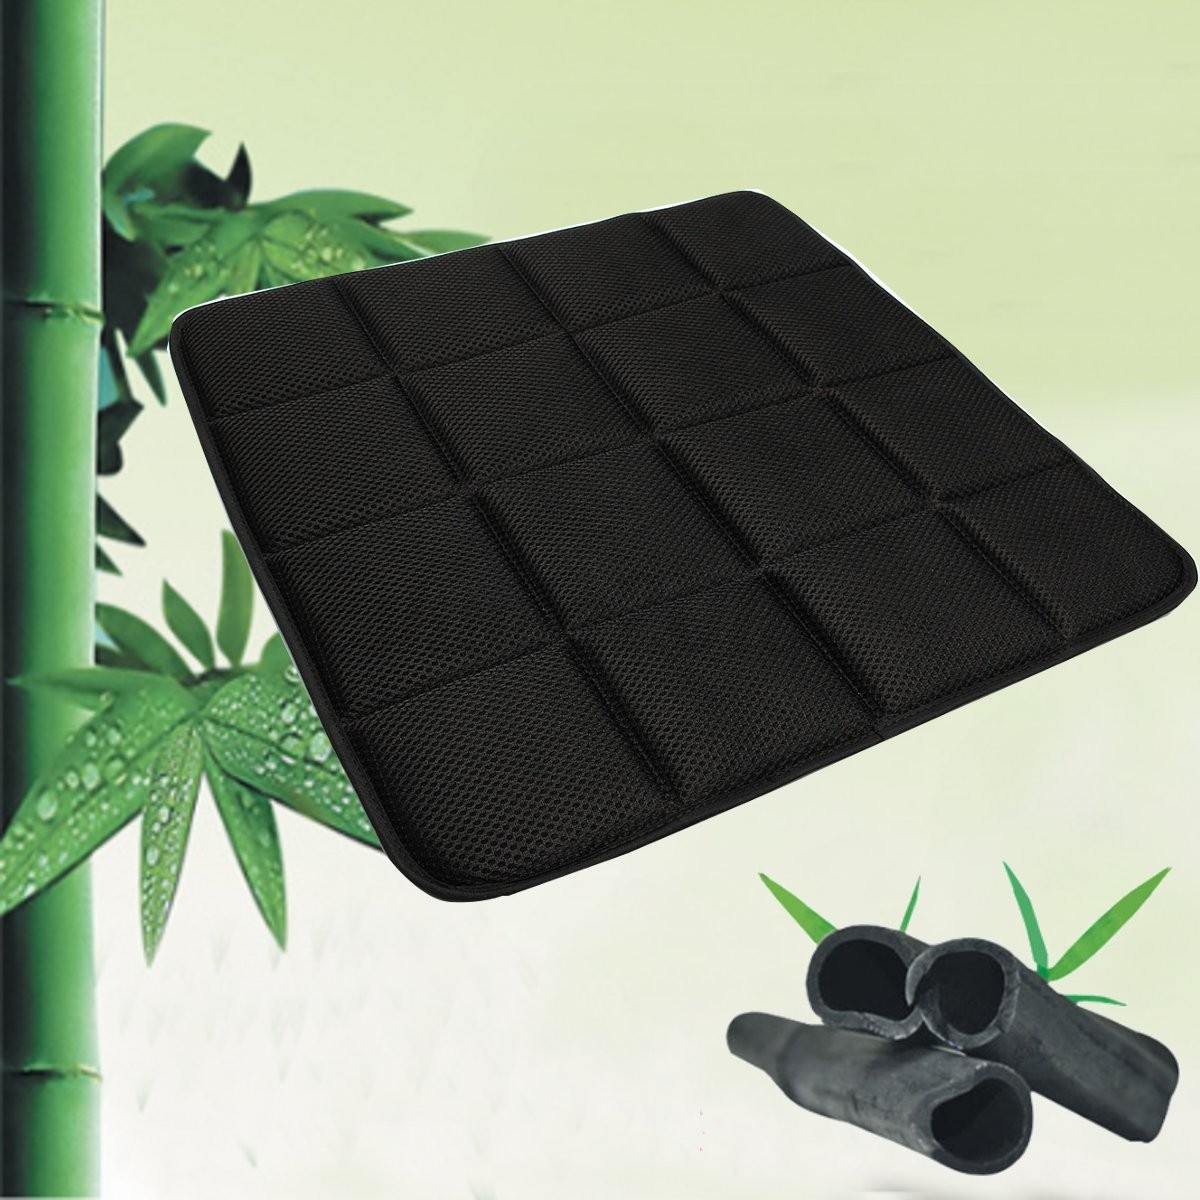 office chair seat covers black folding ground bamboo charcoal breathable cushion cover pad mat for